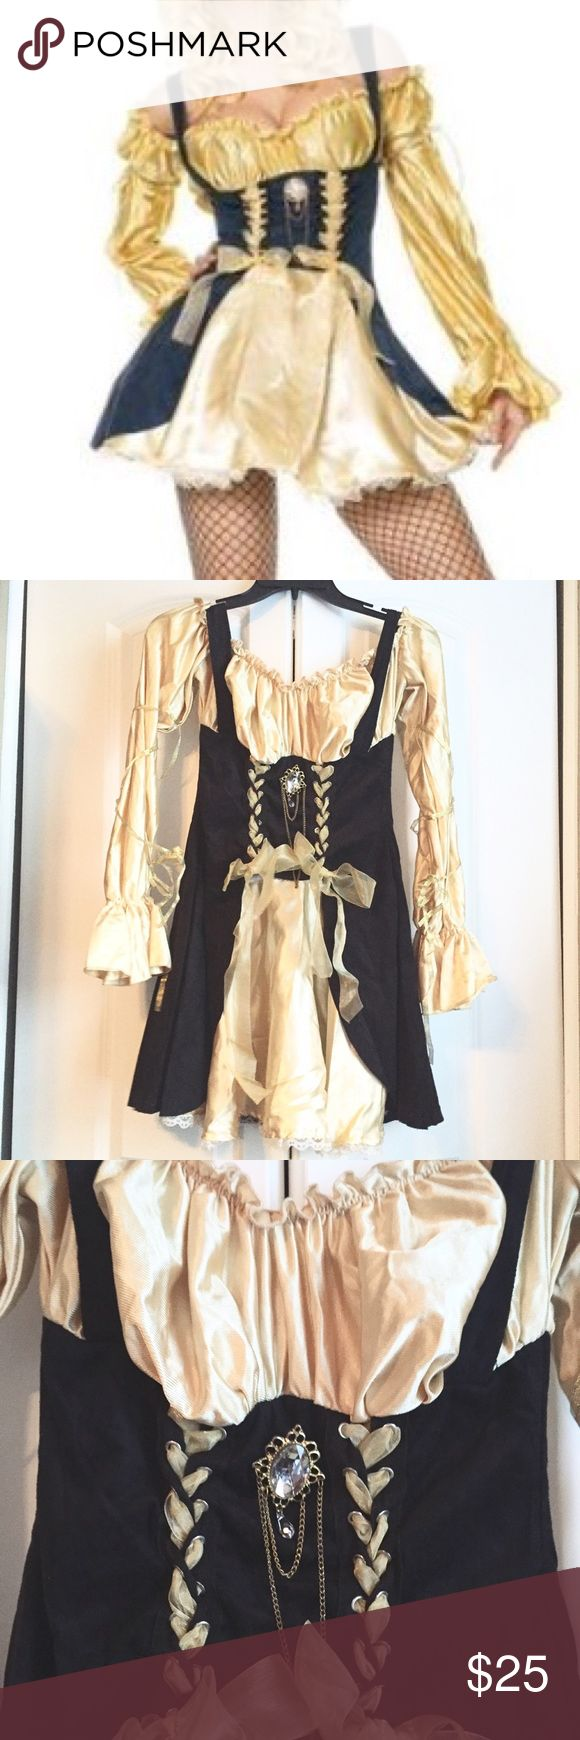 🎃 Halloween Costume Sale 🎃 Pirate Wench From Leg Avenue. Gently used.  ✖️No trades or offers ❗️Closing my closet soon Leg Avenue Dresses